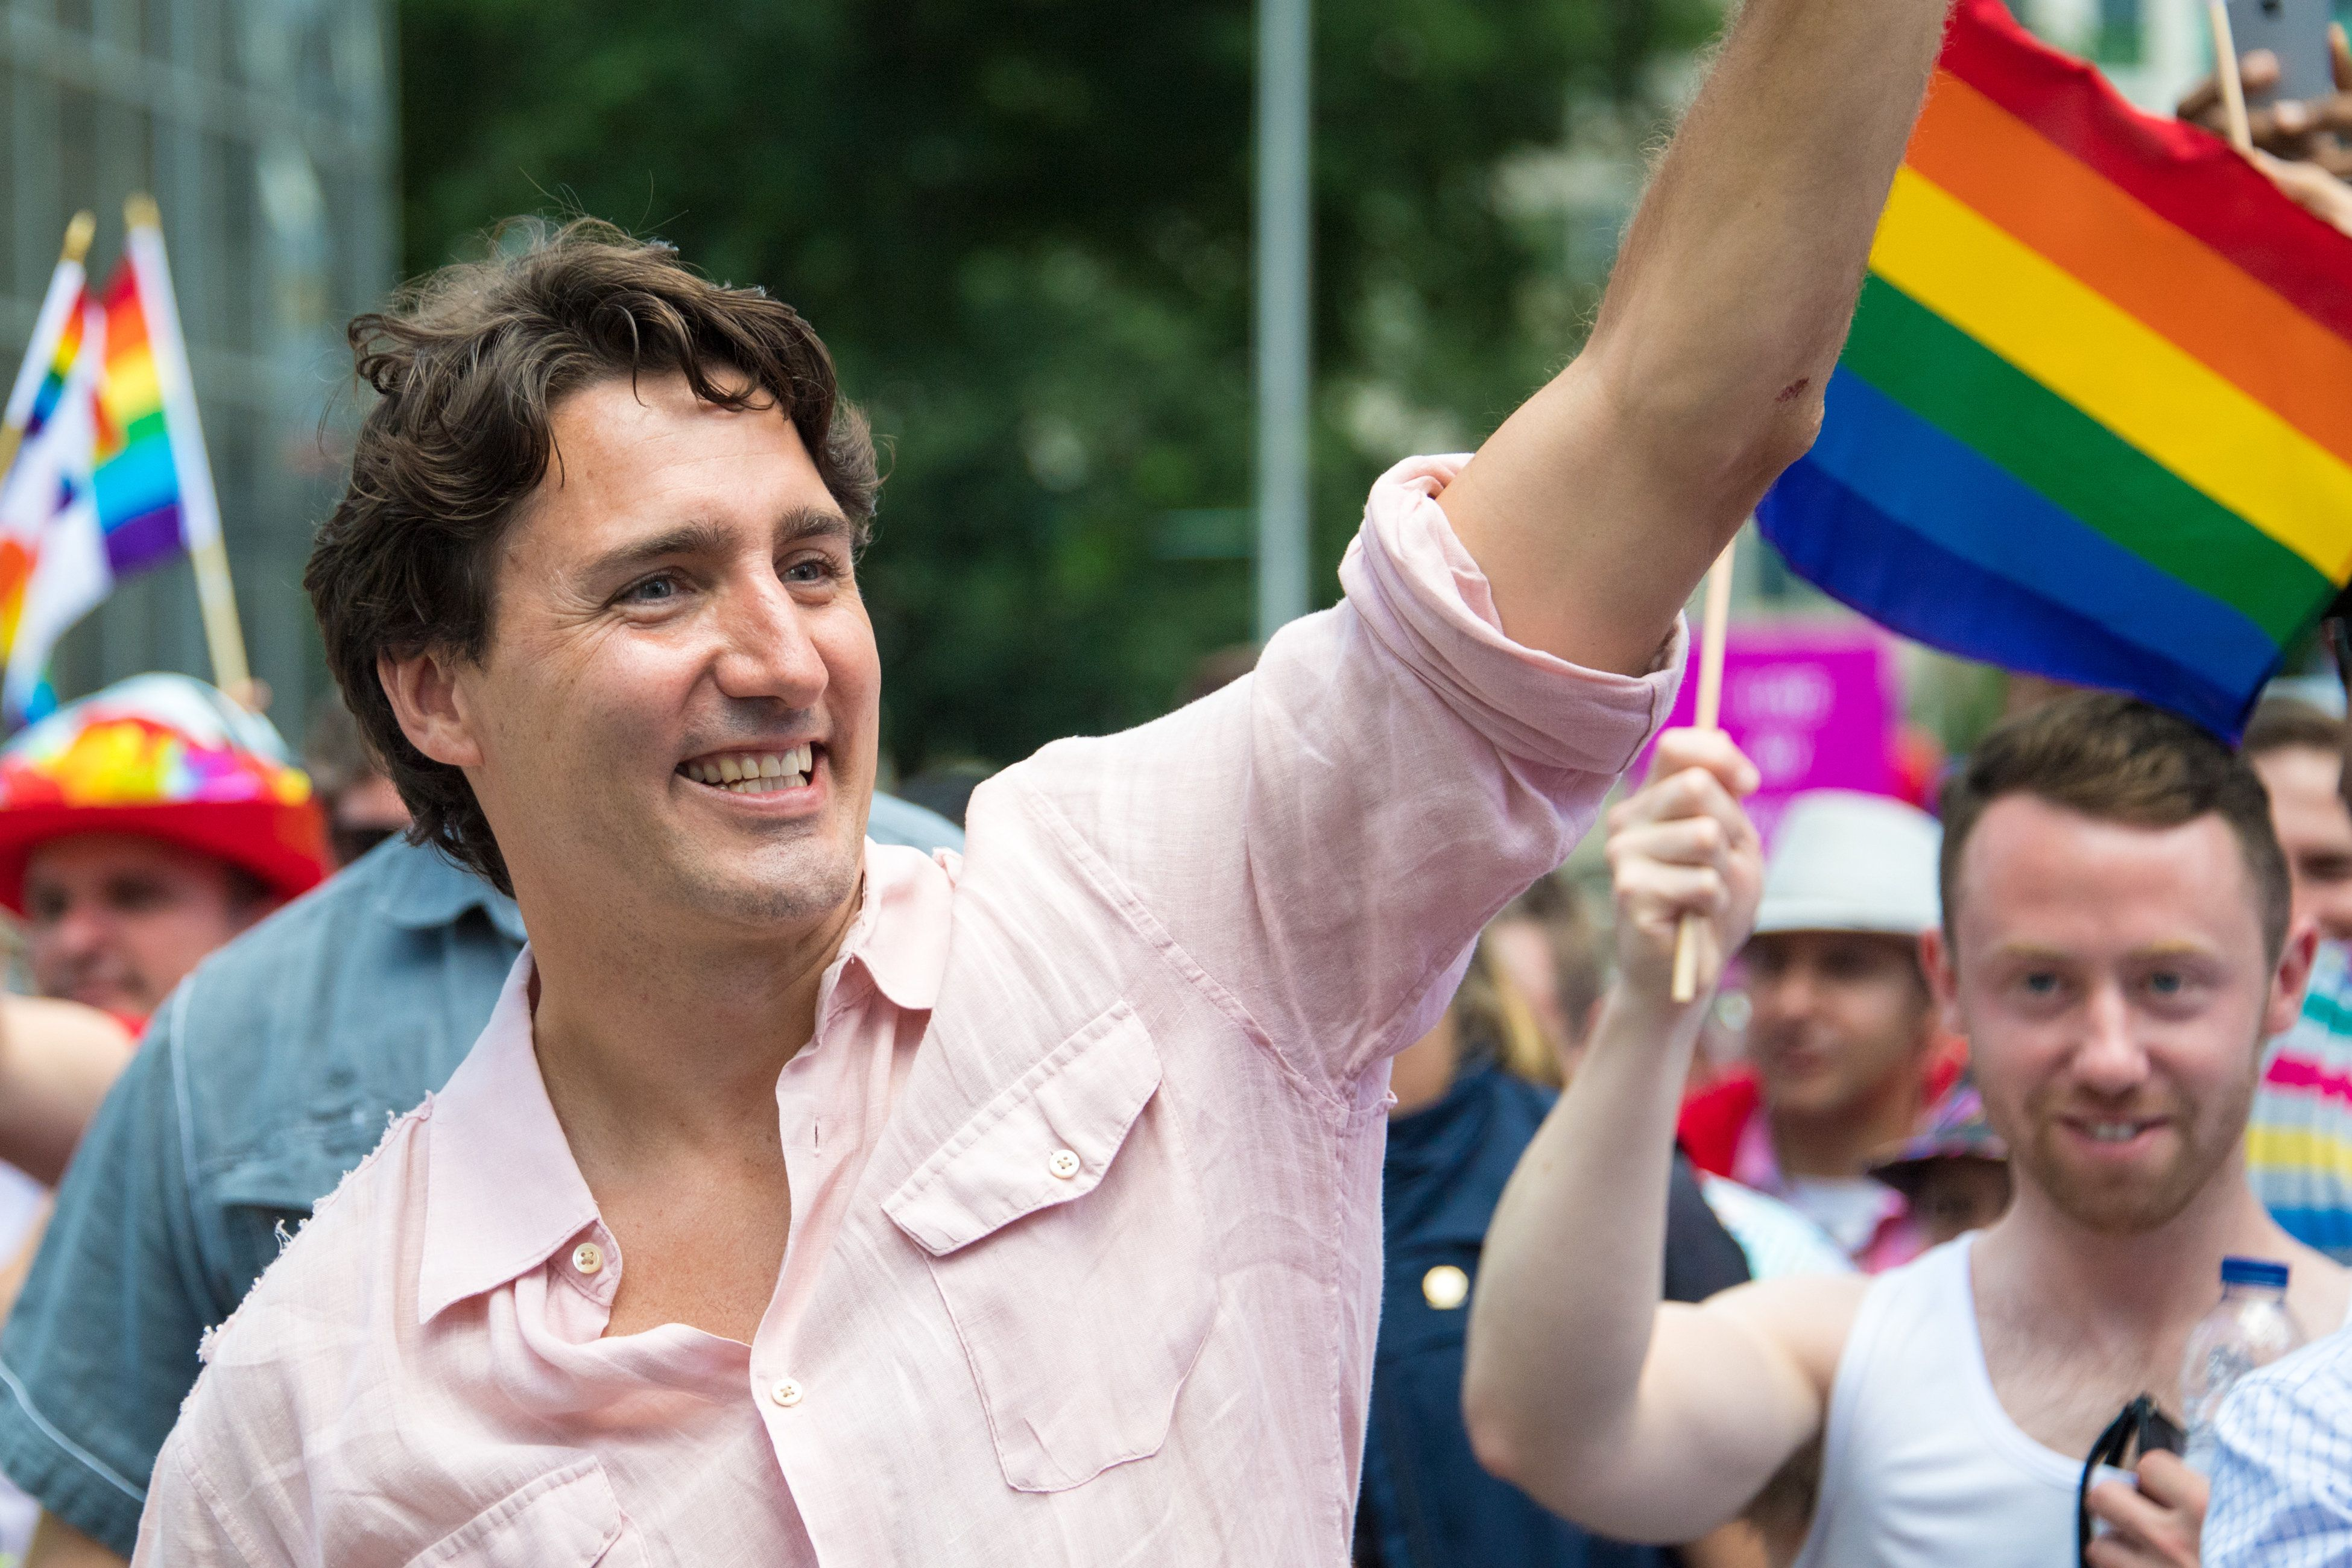 Canadian Prime Minister Justin Trudeau marches in Toronto's Pride Parade in June 2016.